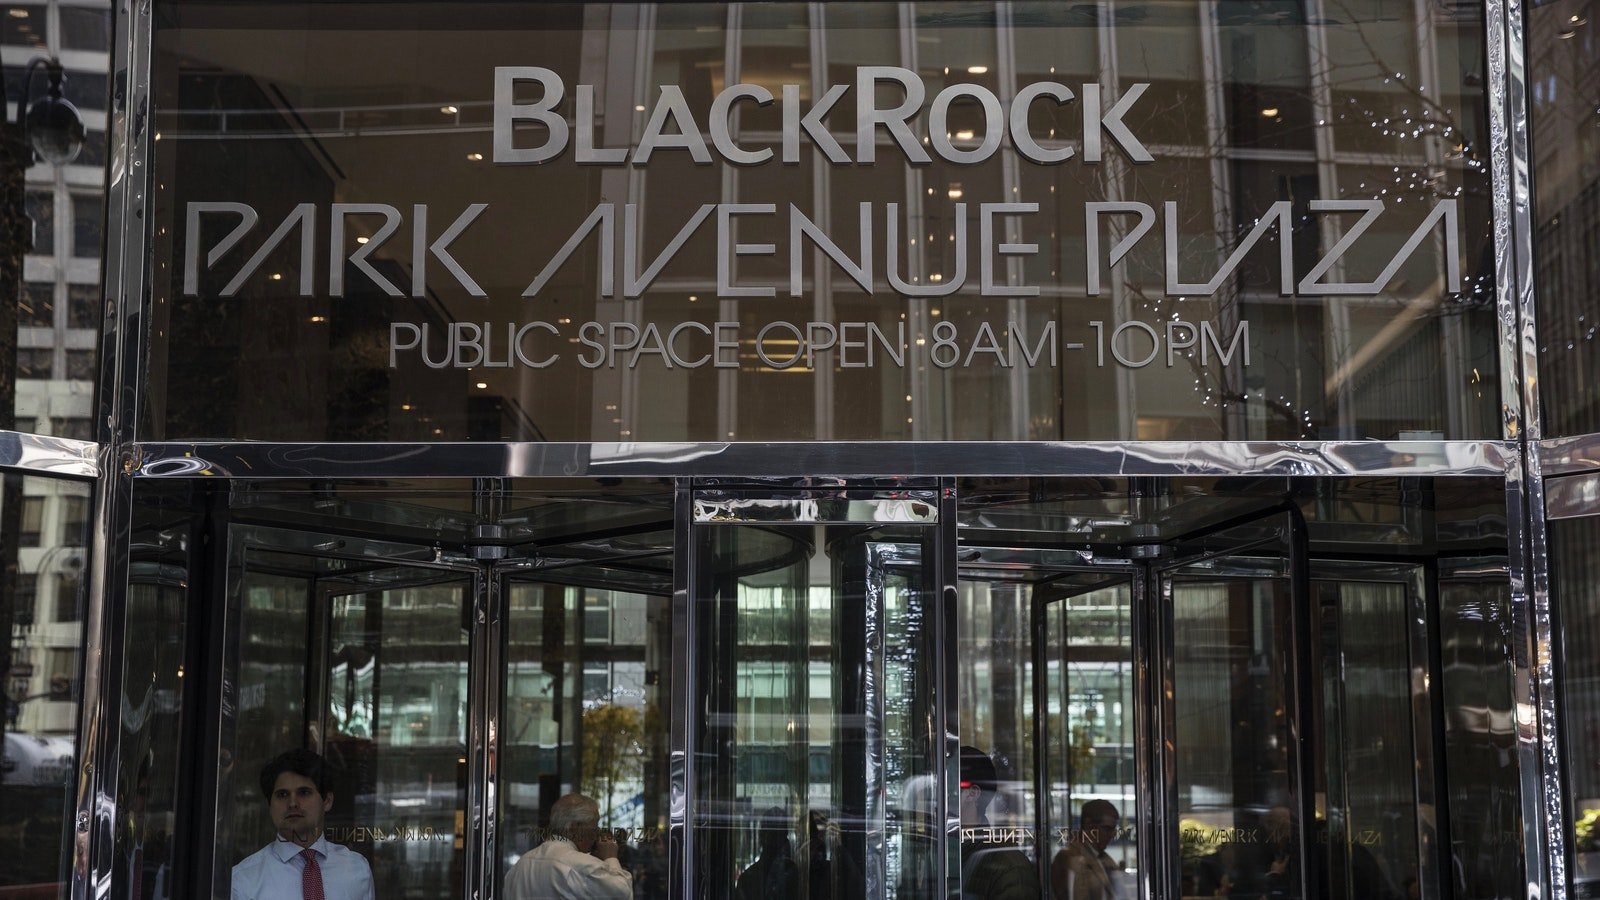 BlackRock's headquarters in New York. Photo by Bloomberg.